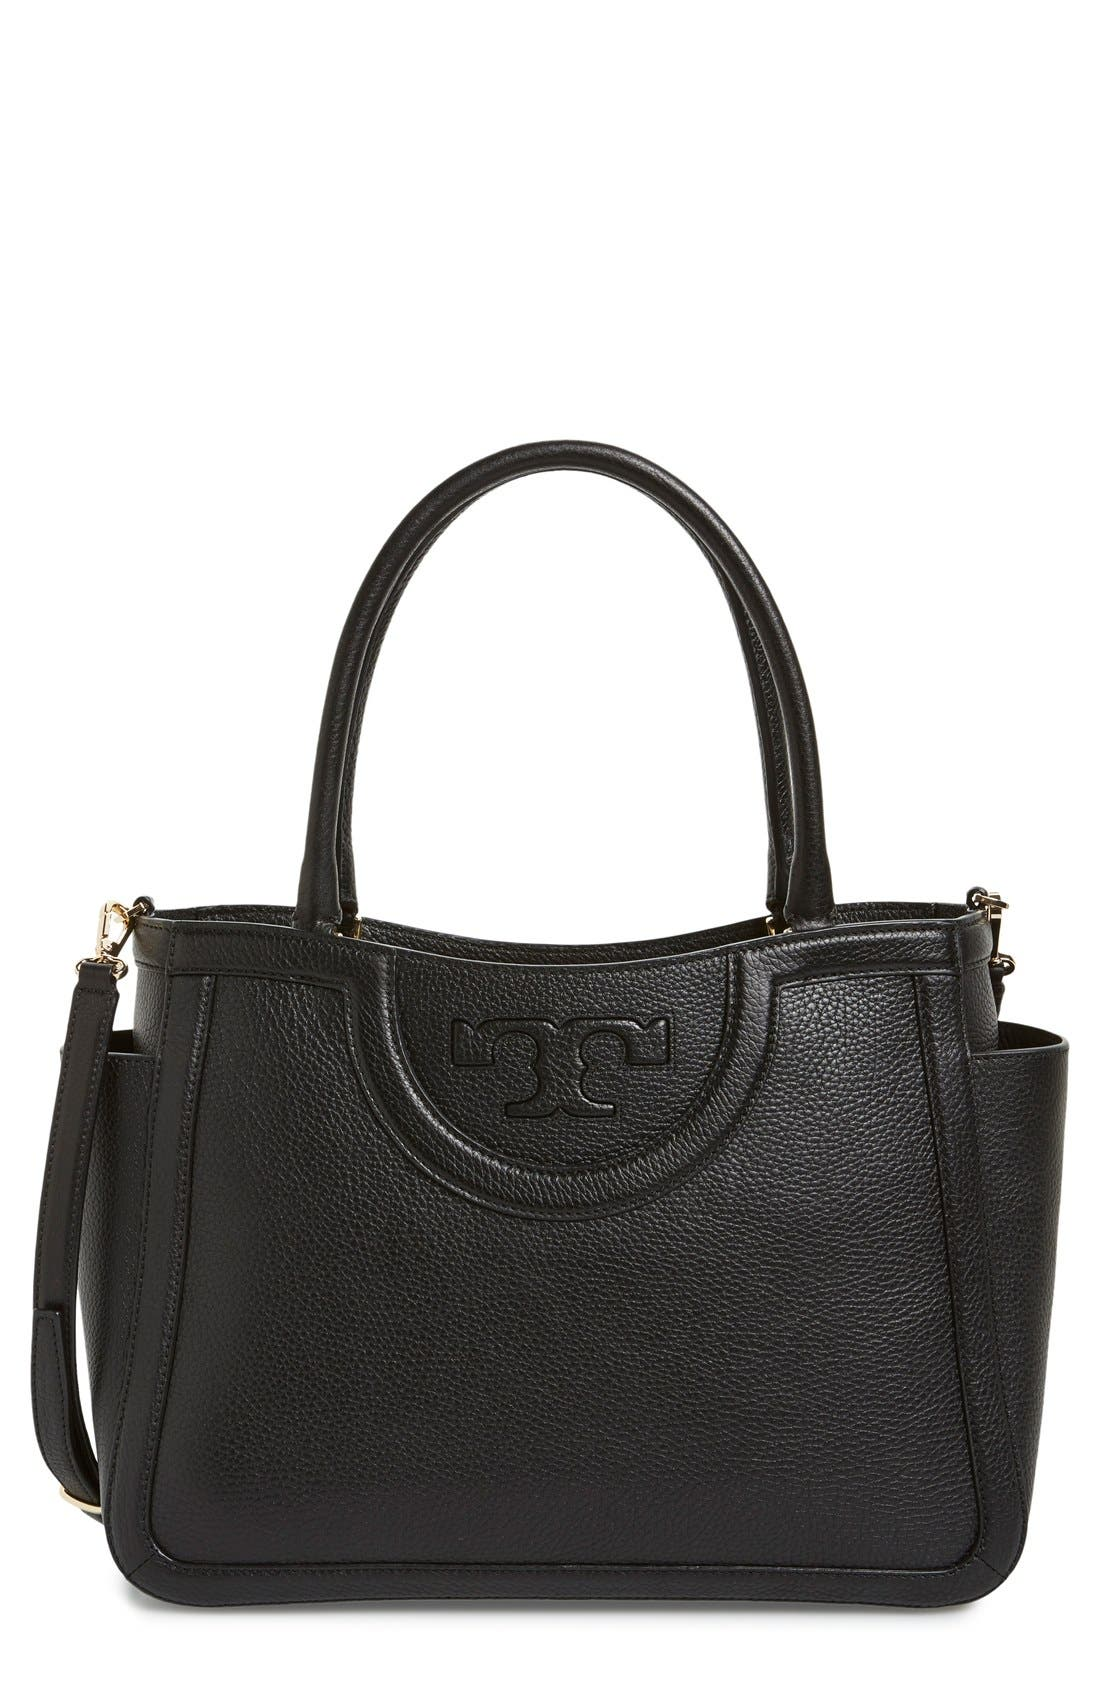 TORY BURCH,                             'Serif T' Leather Crossbody Satchel,                             Main thumbnail 1, color,                             001